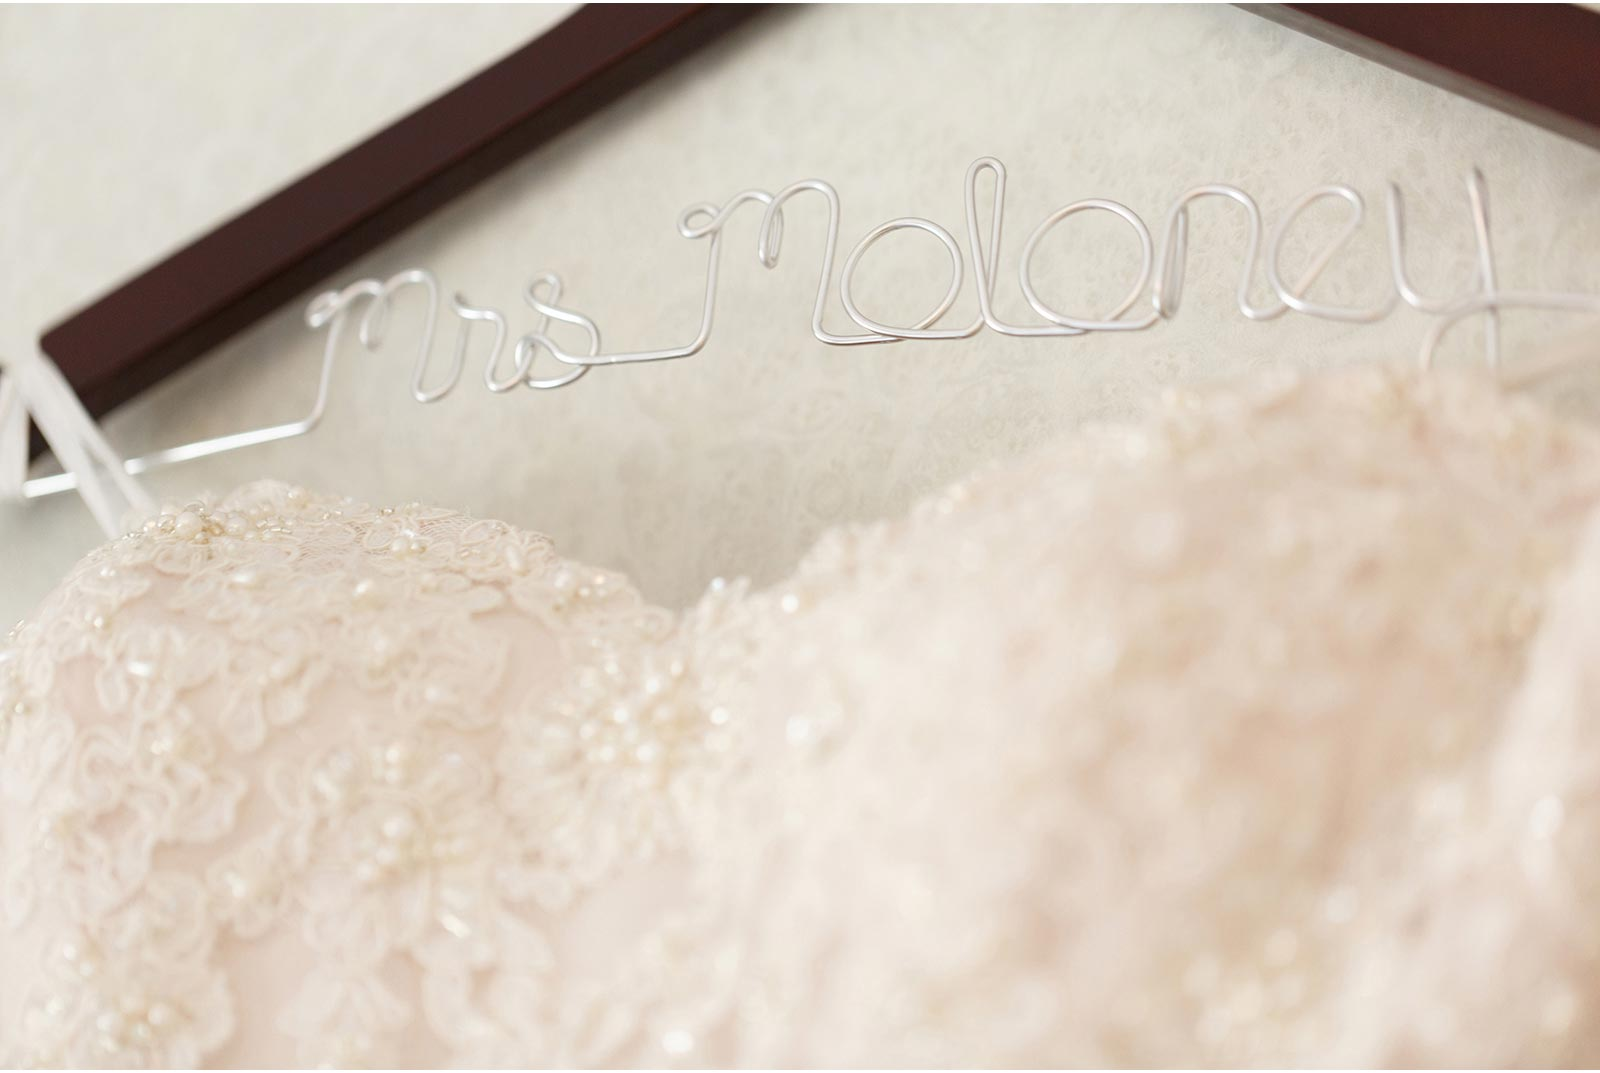 Brides gown hangs on a hanger with her married name